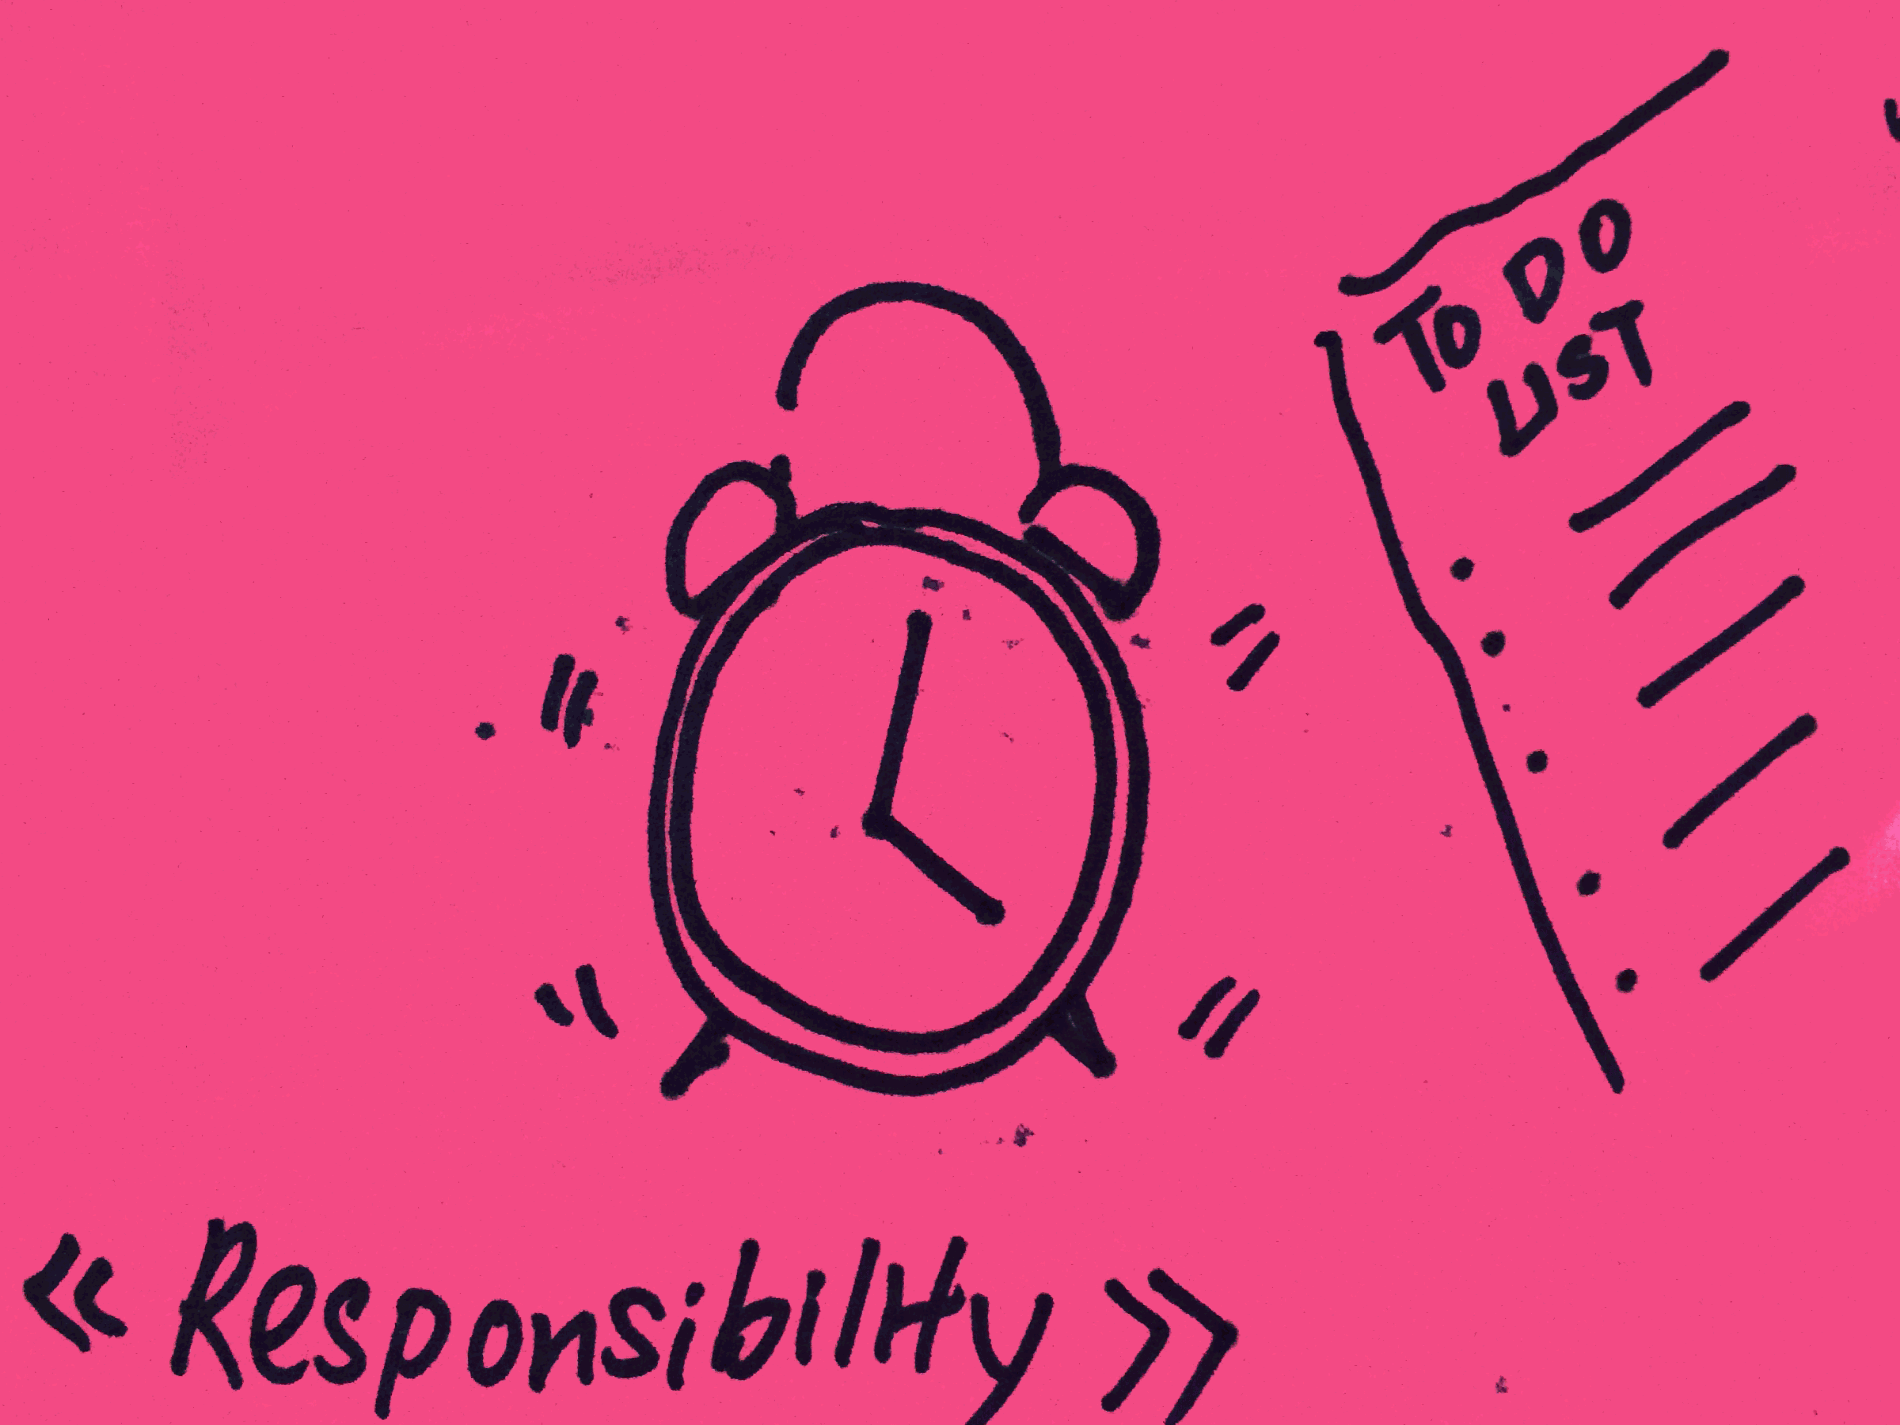 Responsibility Strengthsfinder Alarm Clock Punctual To Do List